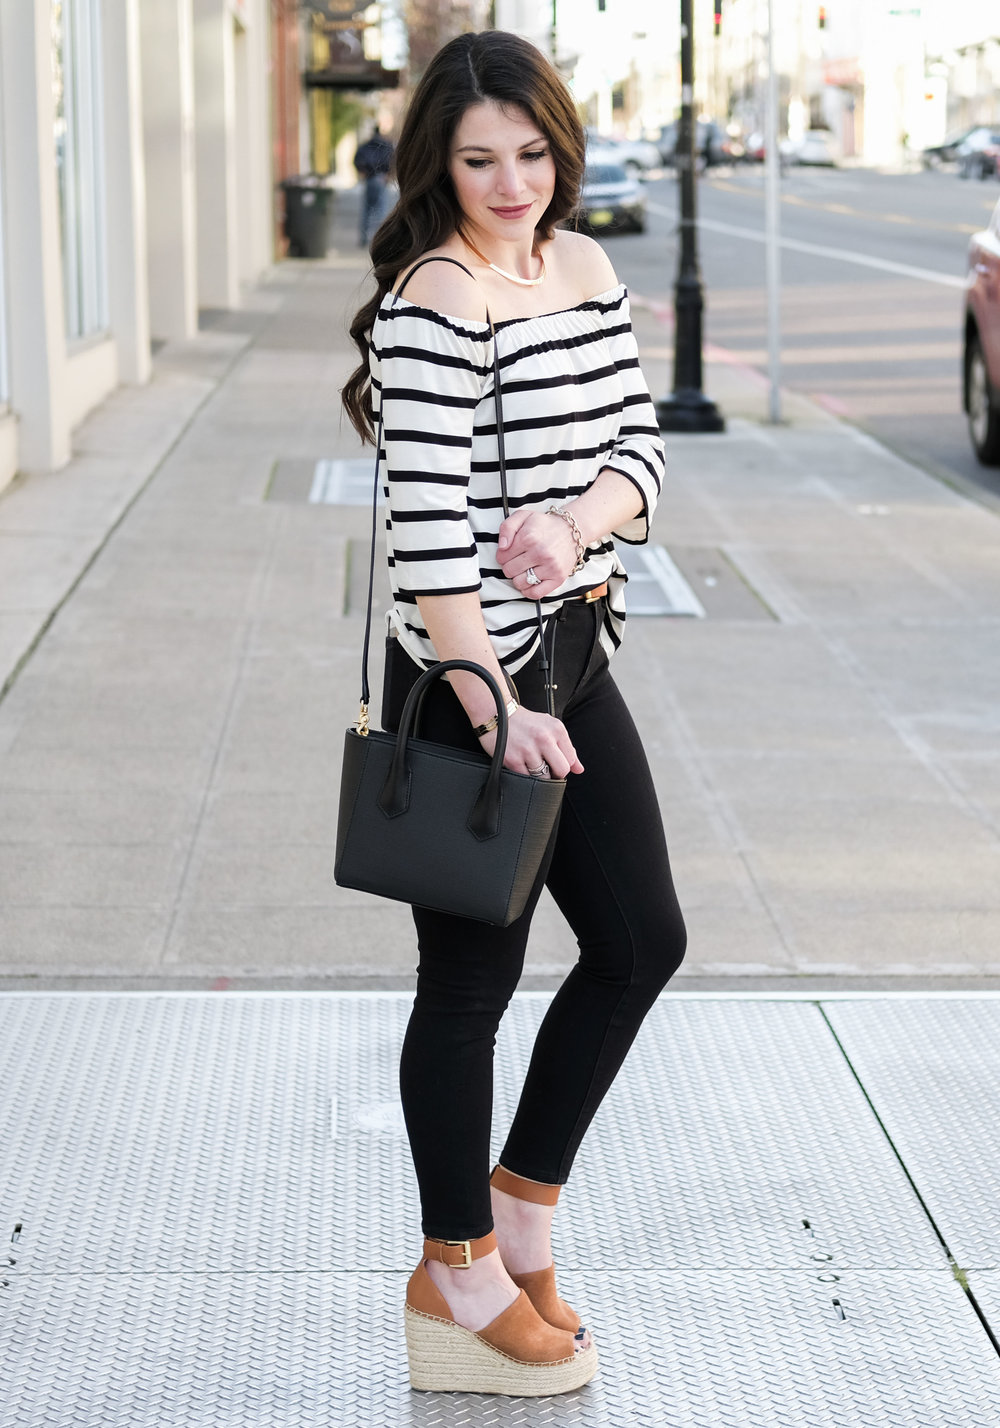 Cute spring outfit.  BB Dakota Geri Off the shoulder top, Marc Fisher Adalyn wedges, Dange Dover Mini Tote, Black outfit with Tan accessories.